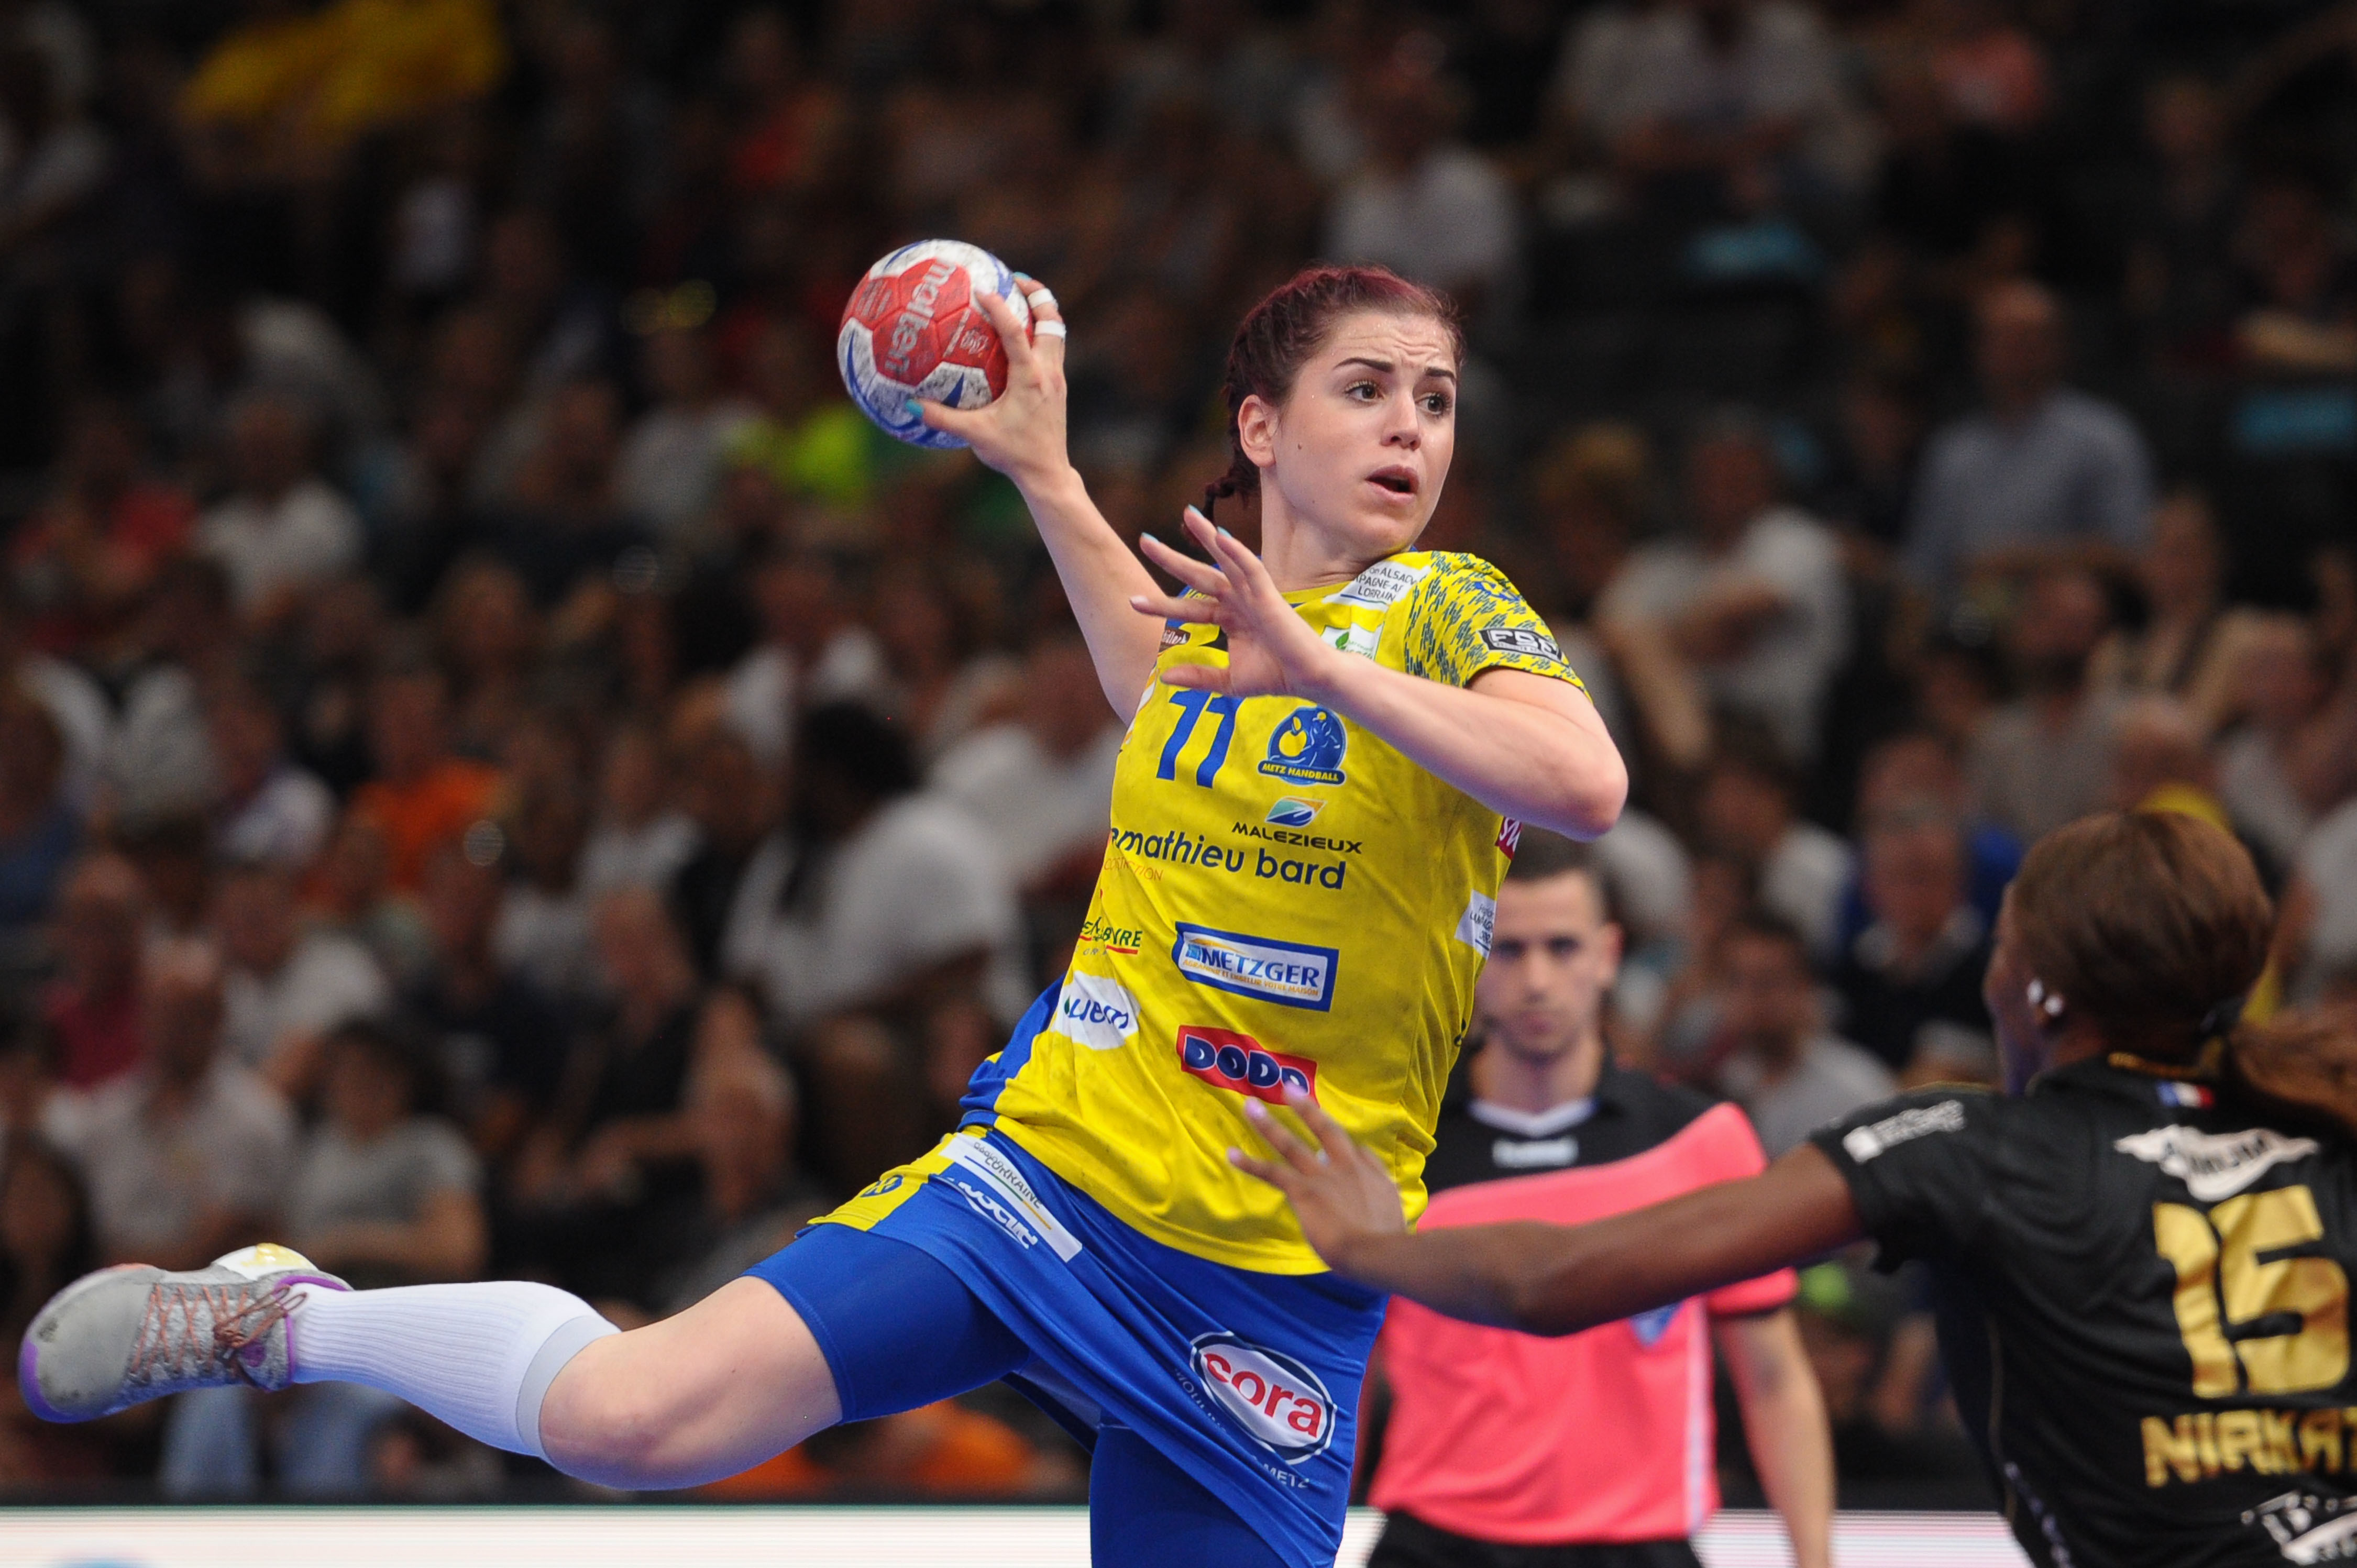 Tamara Horacek of Metz during the Women's handball National Cup Final match between Metz and Issy Paris at AccorHotels Arena on May 27, 2017 in Paris, France. ( Photo by Andre Ferreira / Icon Sport )